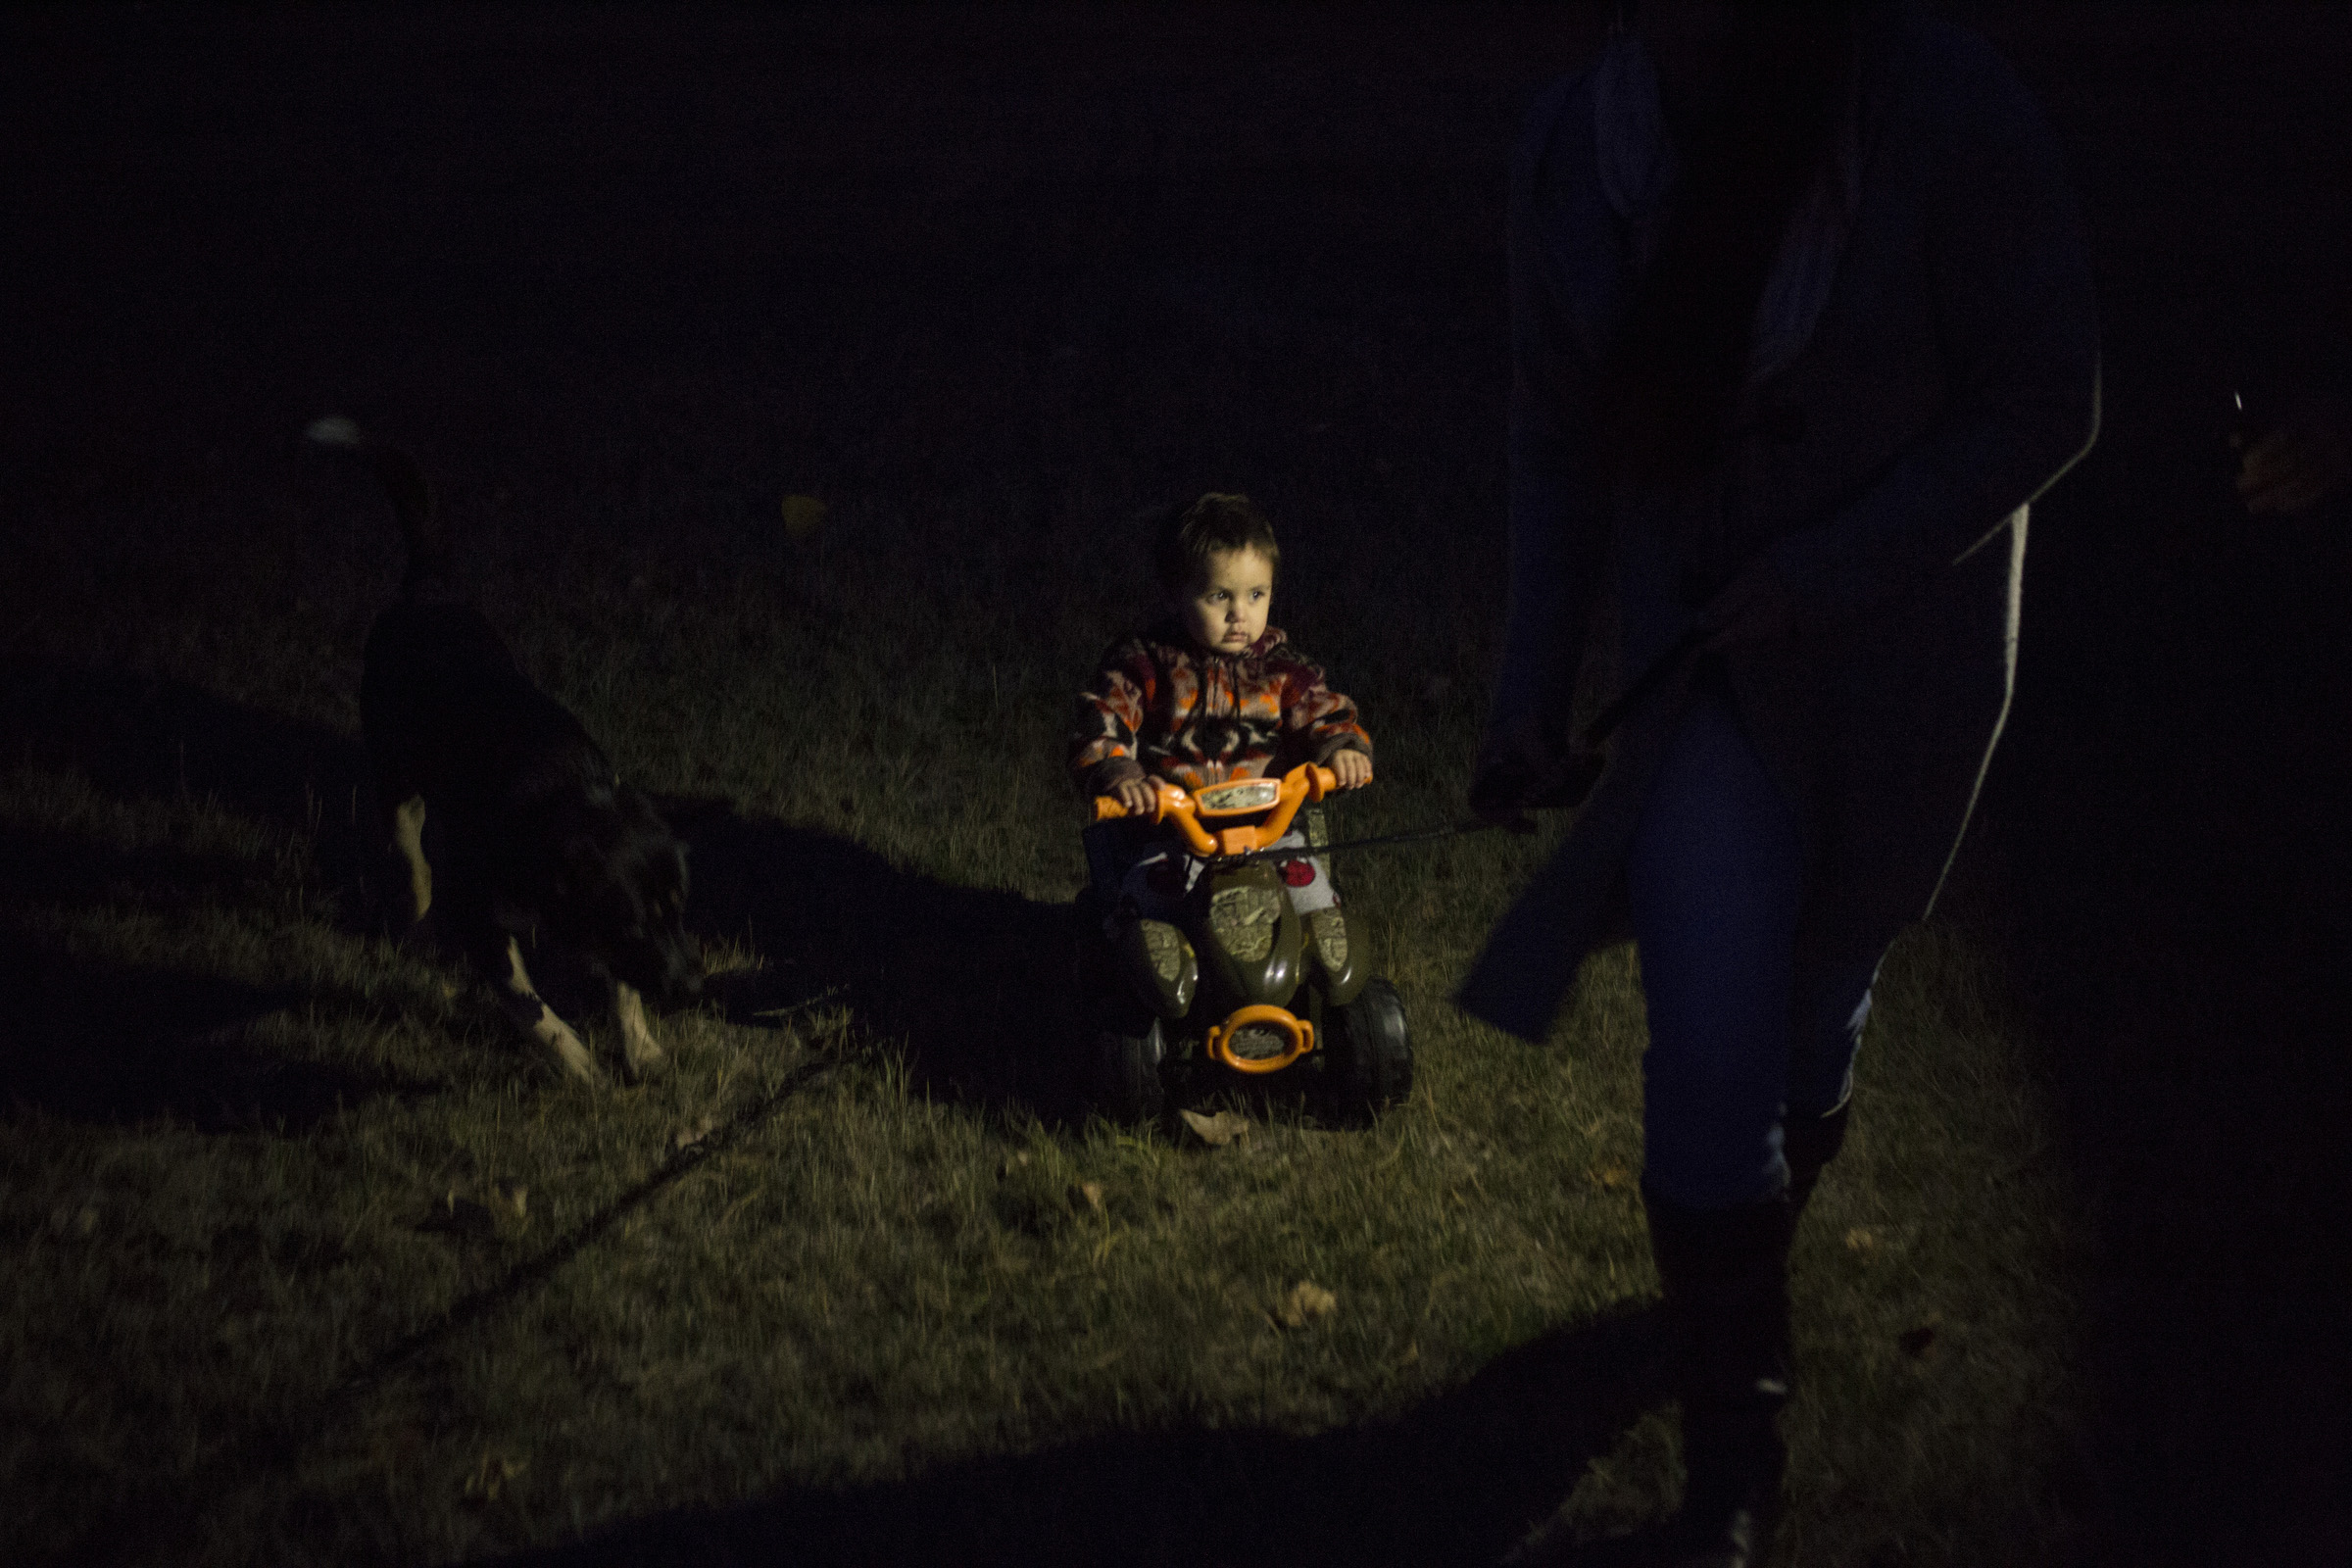 Niste Omeasoo, 2, is pulled across his yard on a tricycle by his grandmother, Susie Boushie, 37, in, Pablo, Montana, on Sunday, October 22, 2017. (Photo by Brittany Greeson)